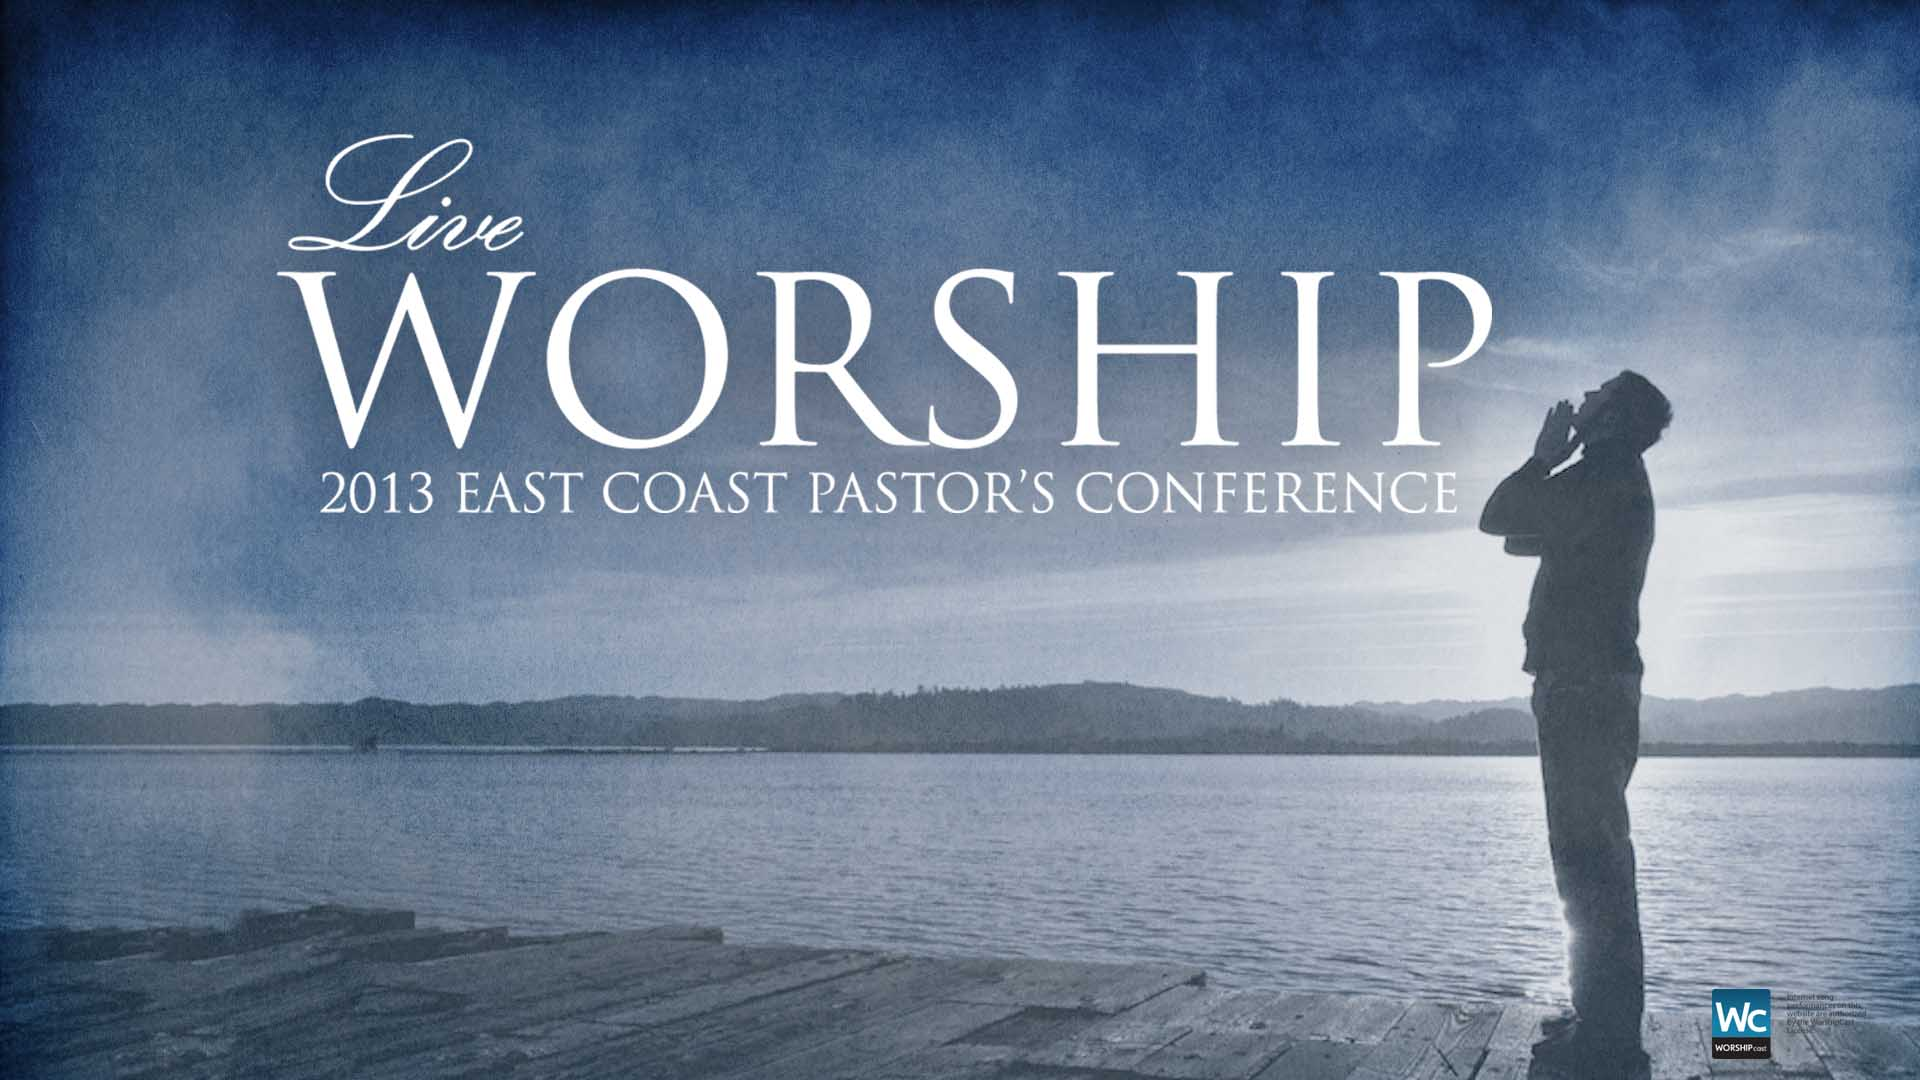 2013 East Coast Pastor's Conference Live Worship